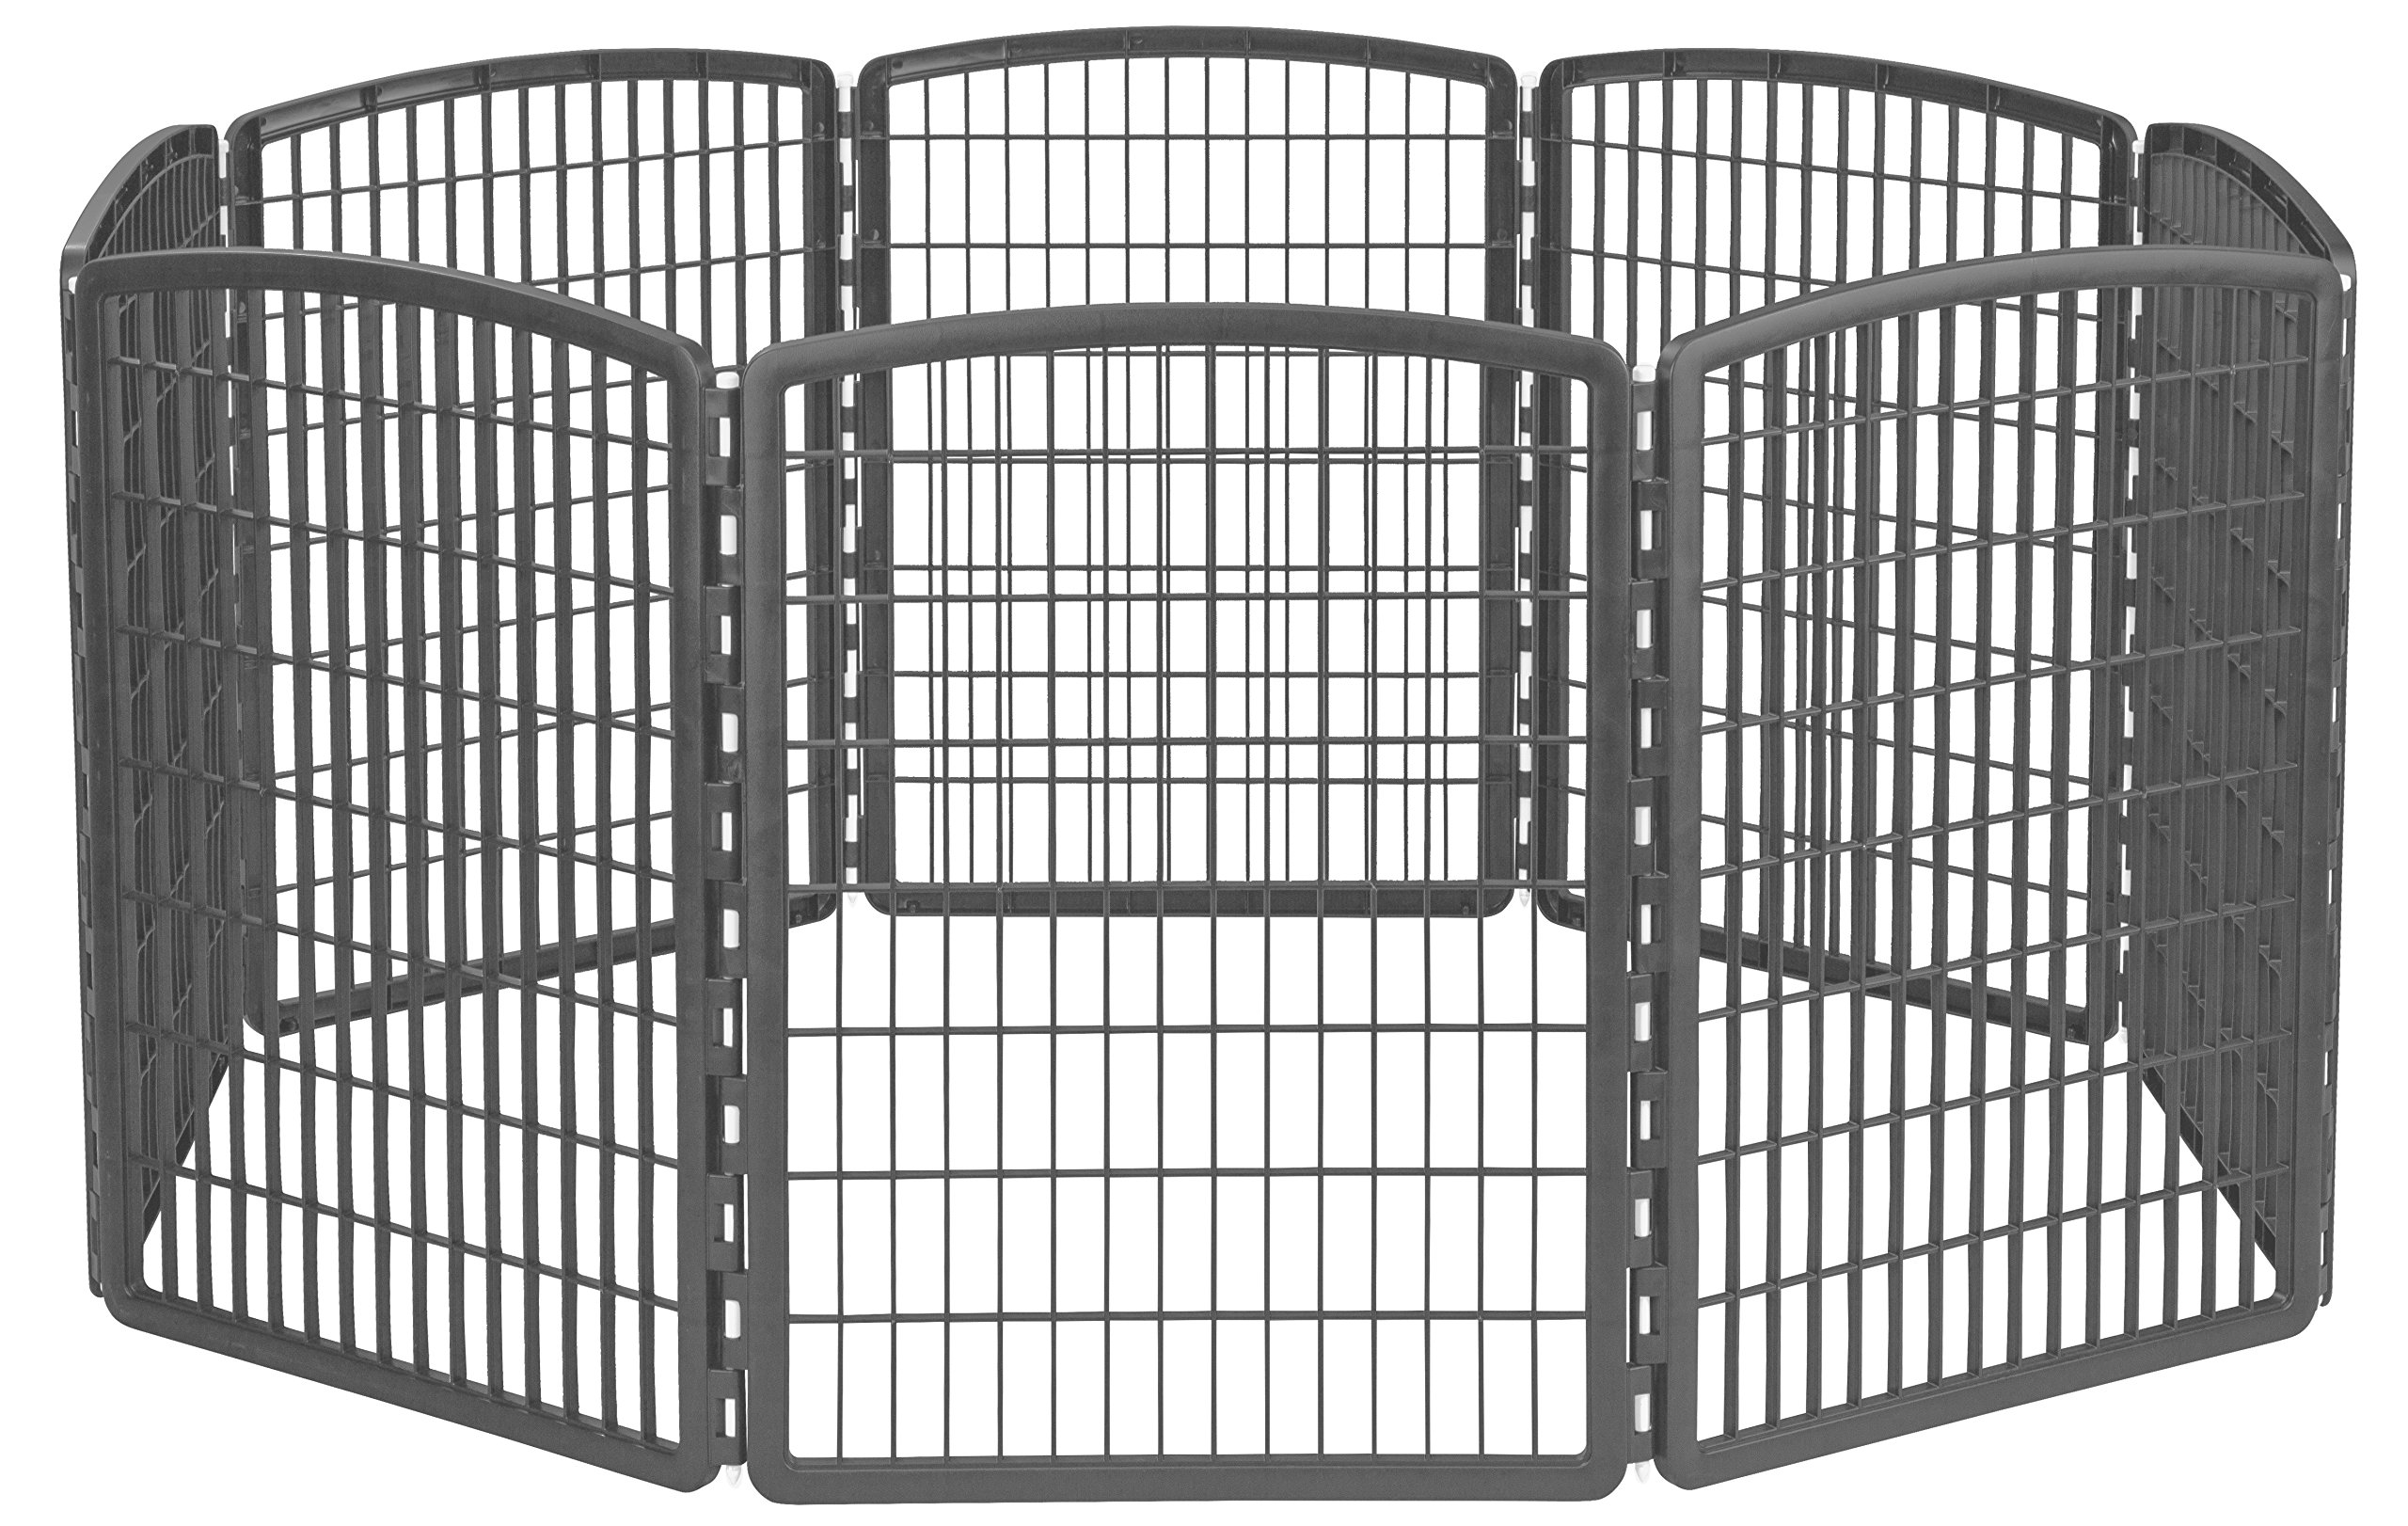 IRIS 34'' Exercise 8-Panel Pet Playpen without Door, Dark Gray